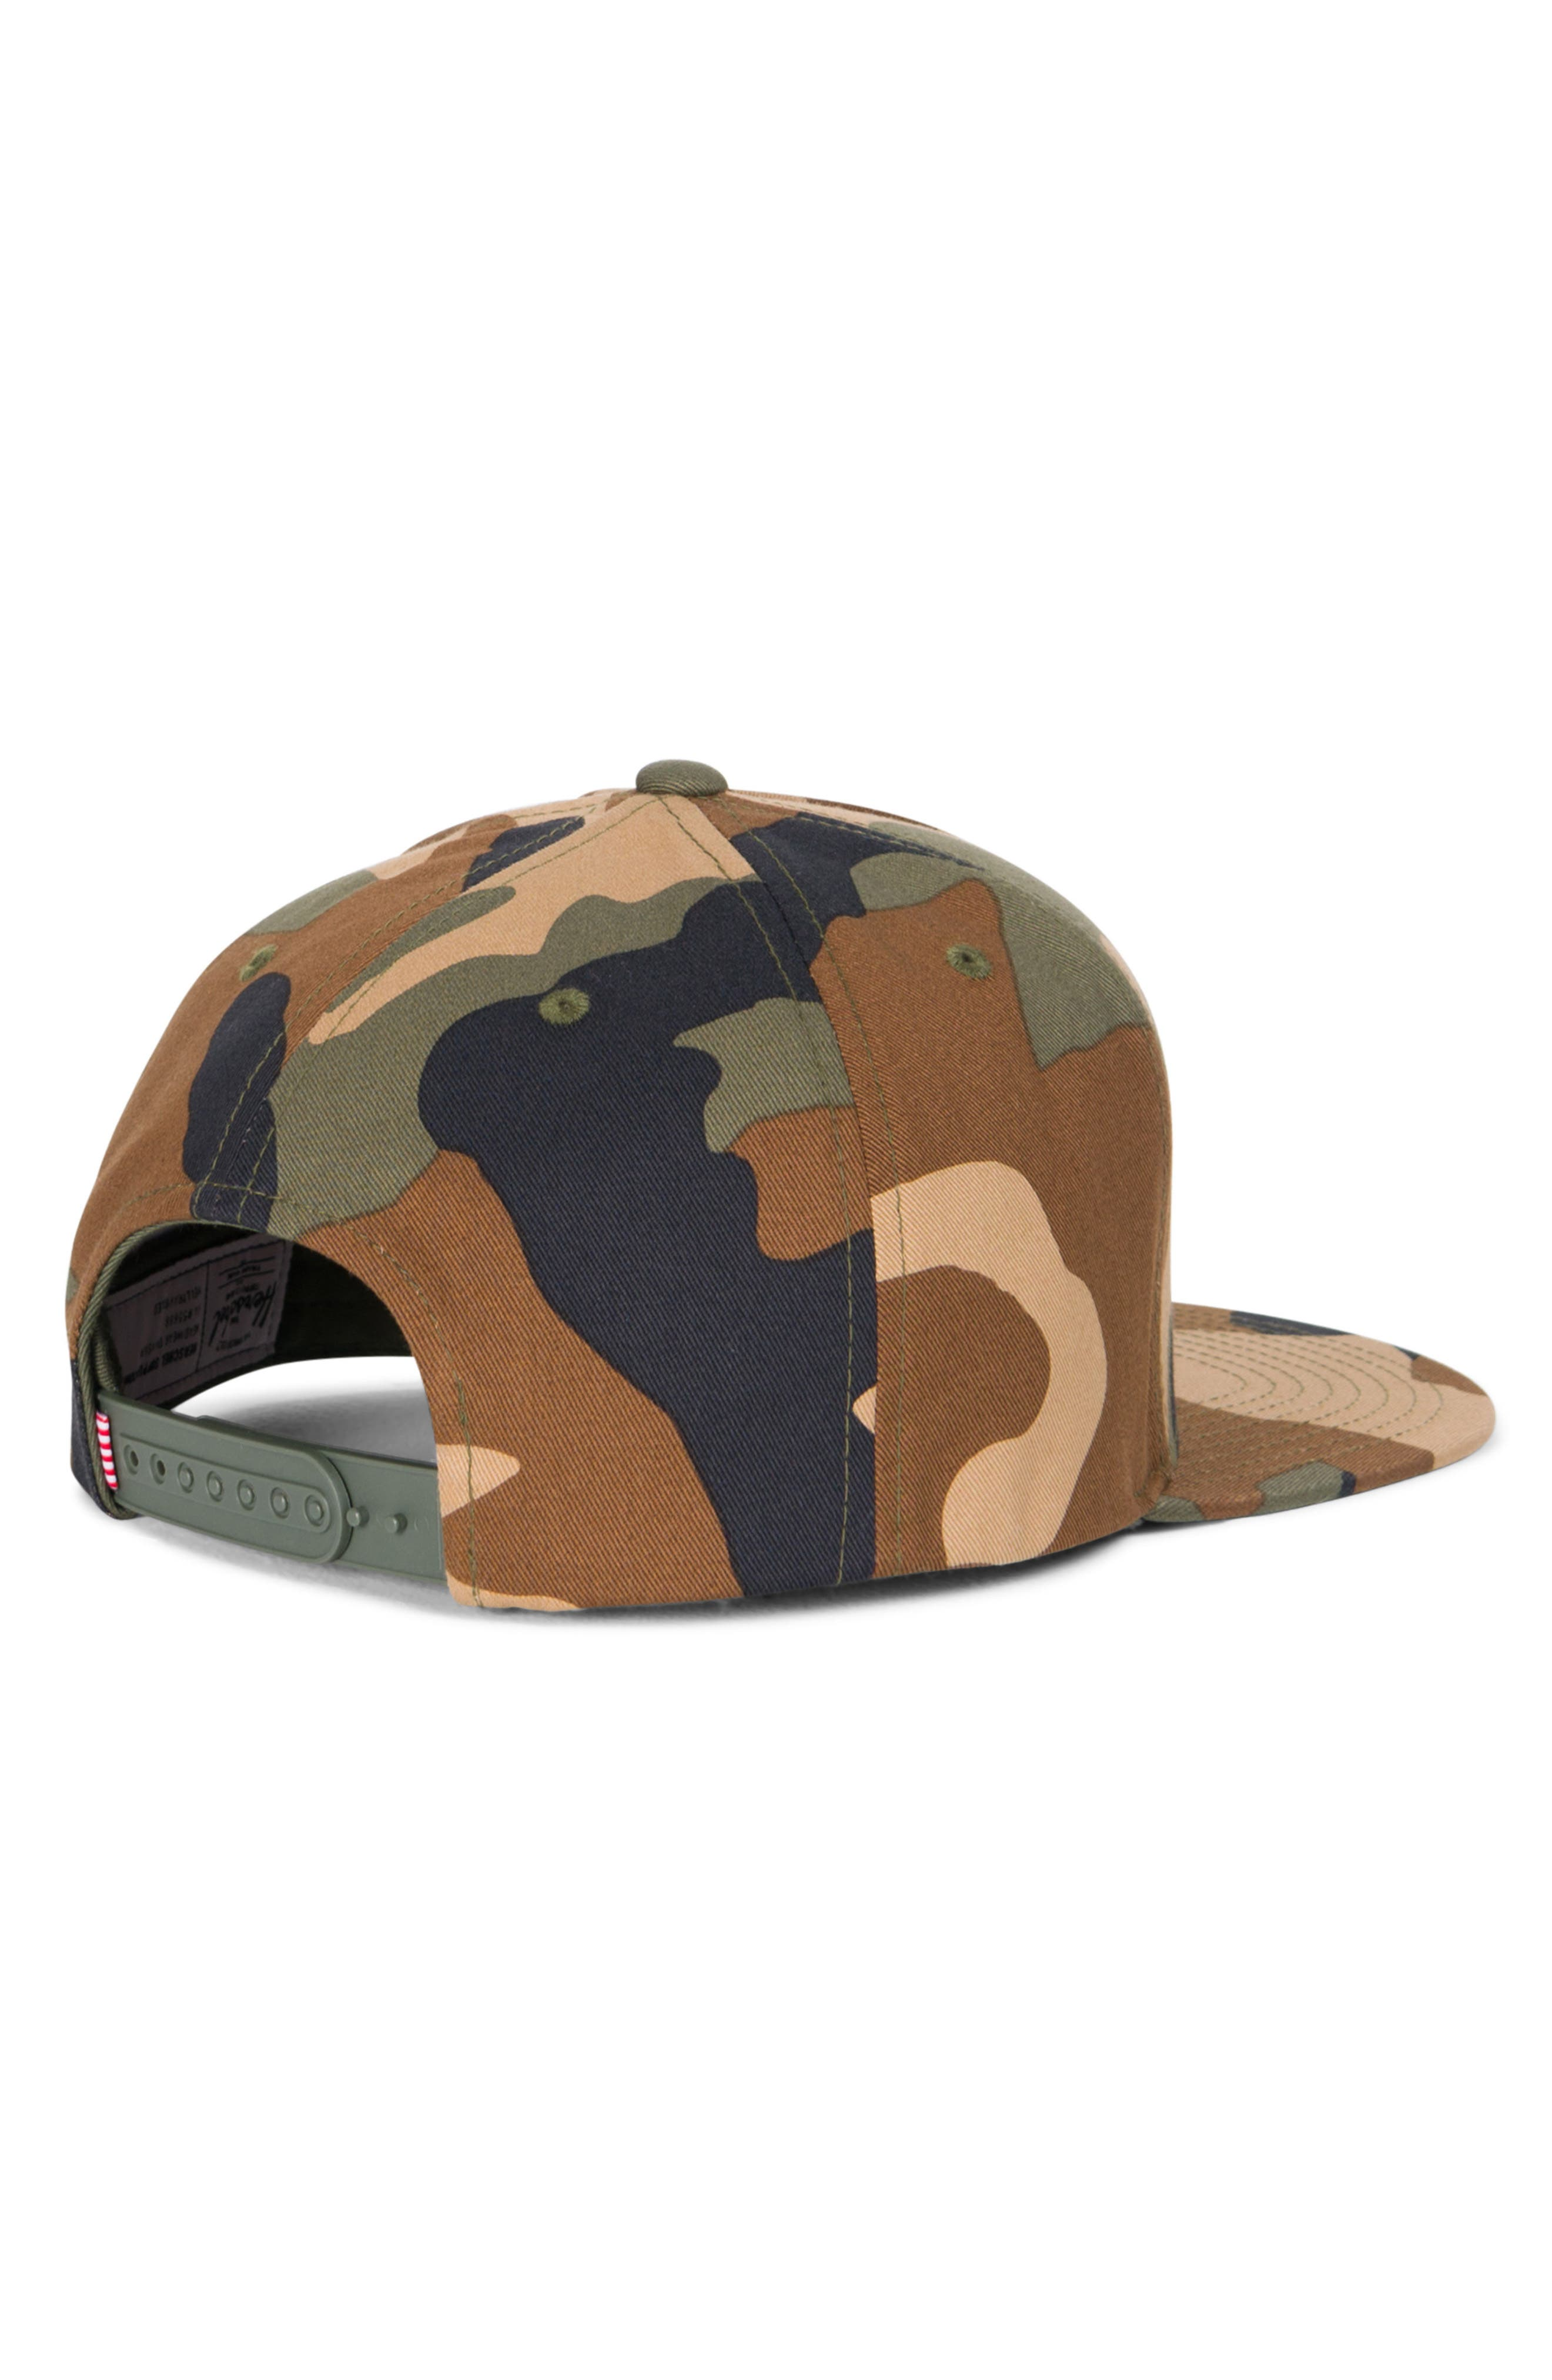 Camo Snapback Baseball Cap,                             Alternate thumbnail 2, color,                             Woodland Camo